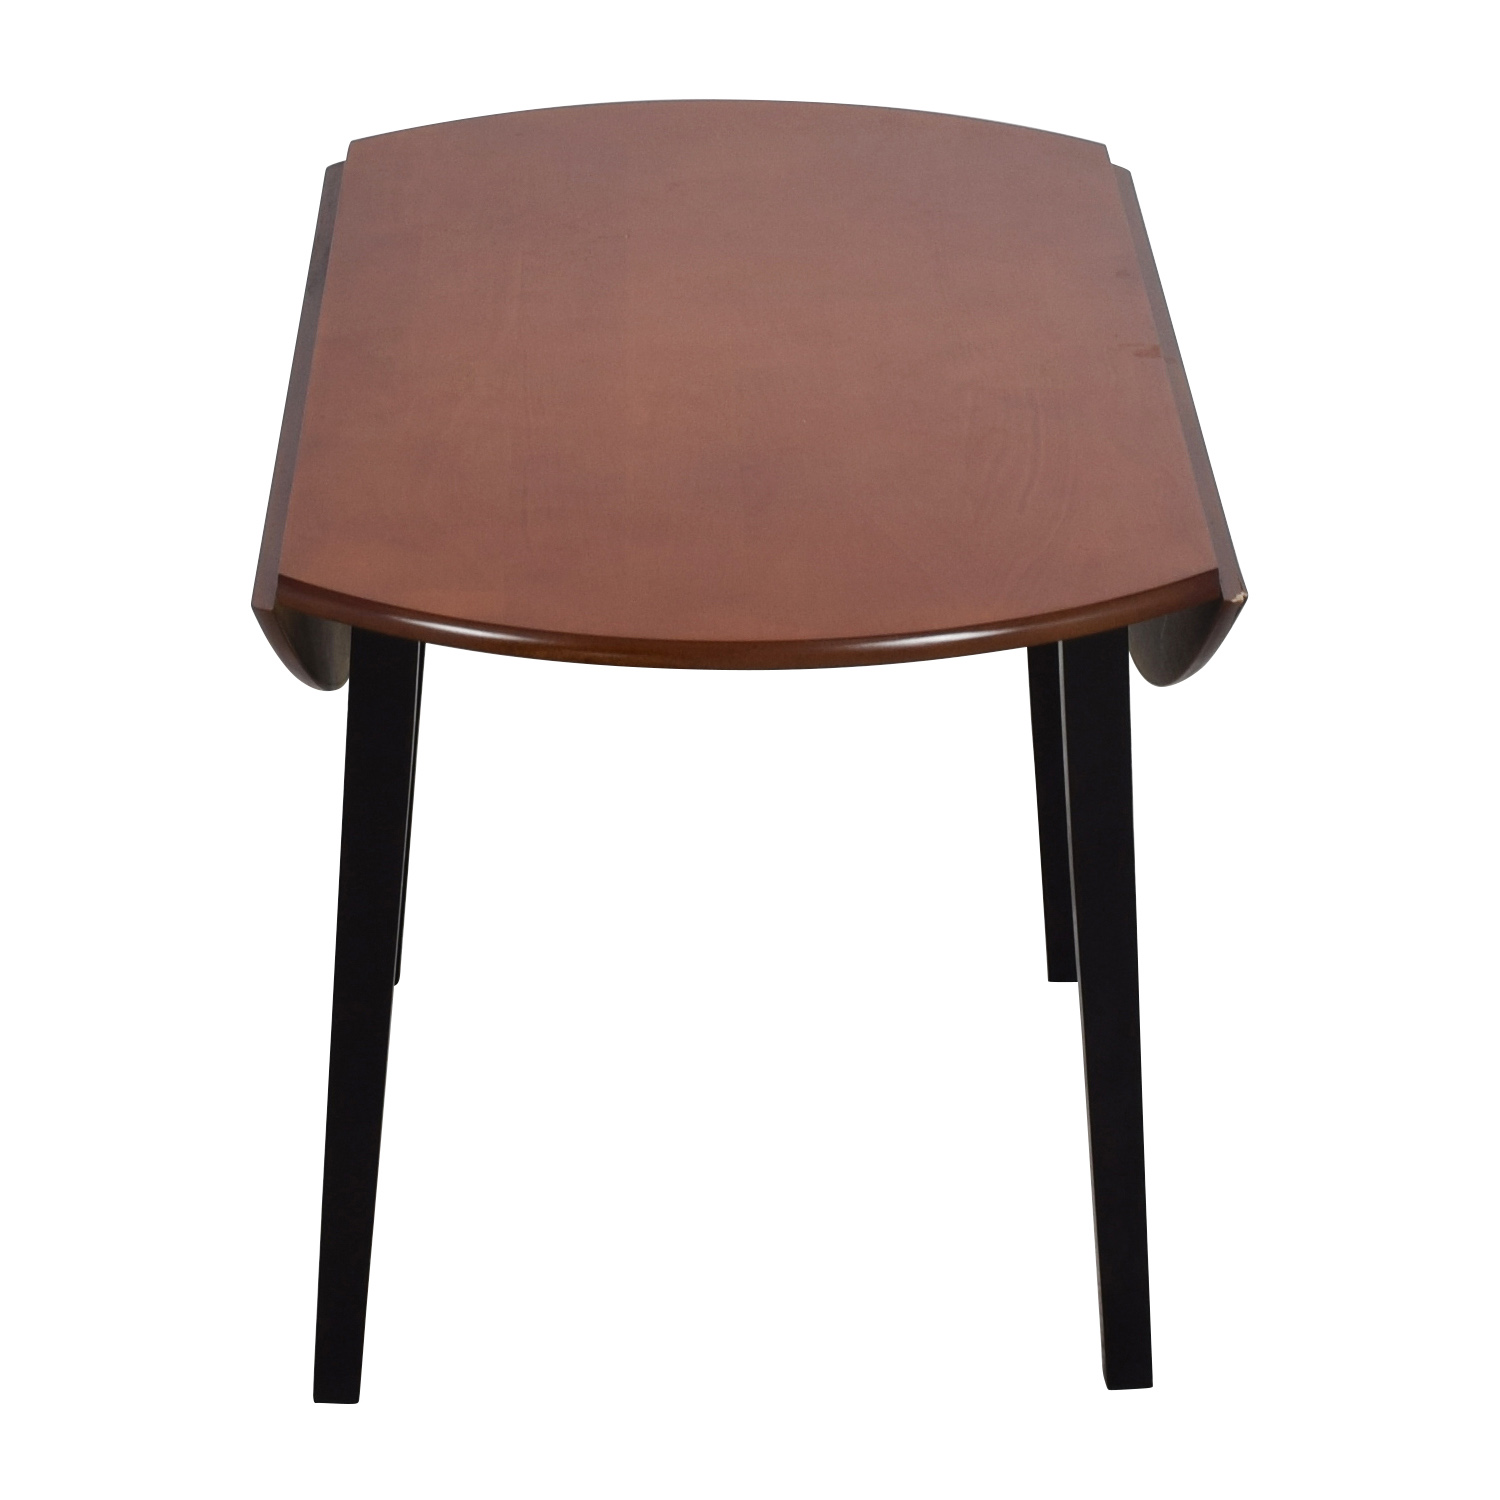 Bobs Furniture Bobs Furniture Brown Wood Round Kitchen Table nj